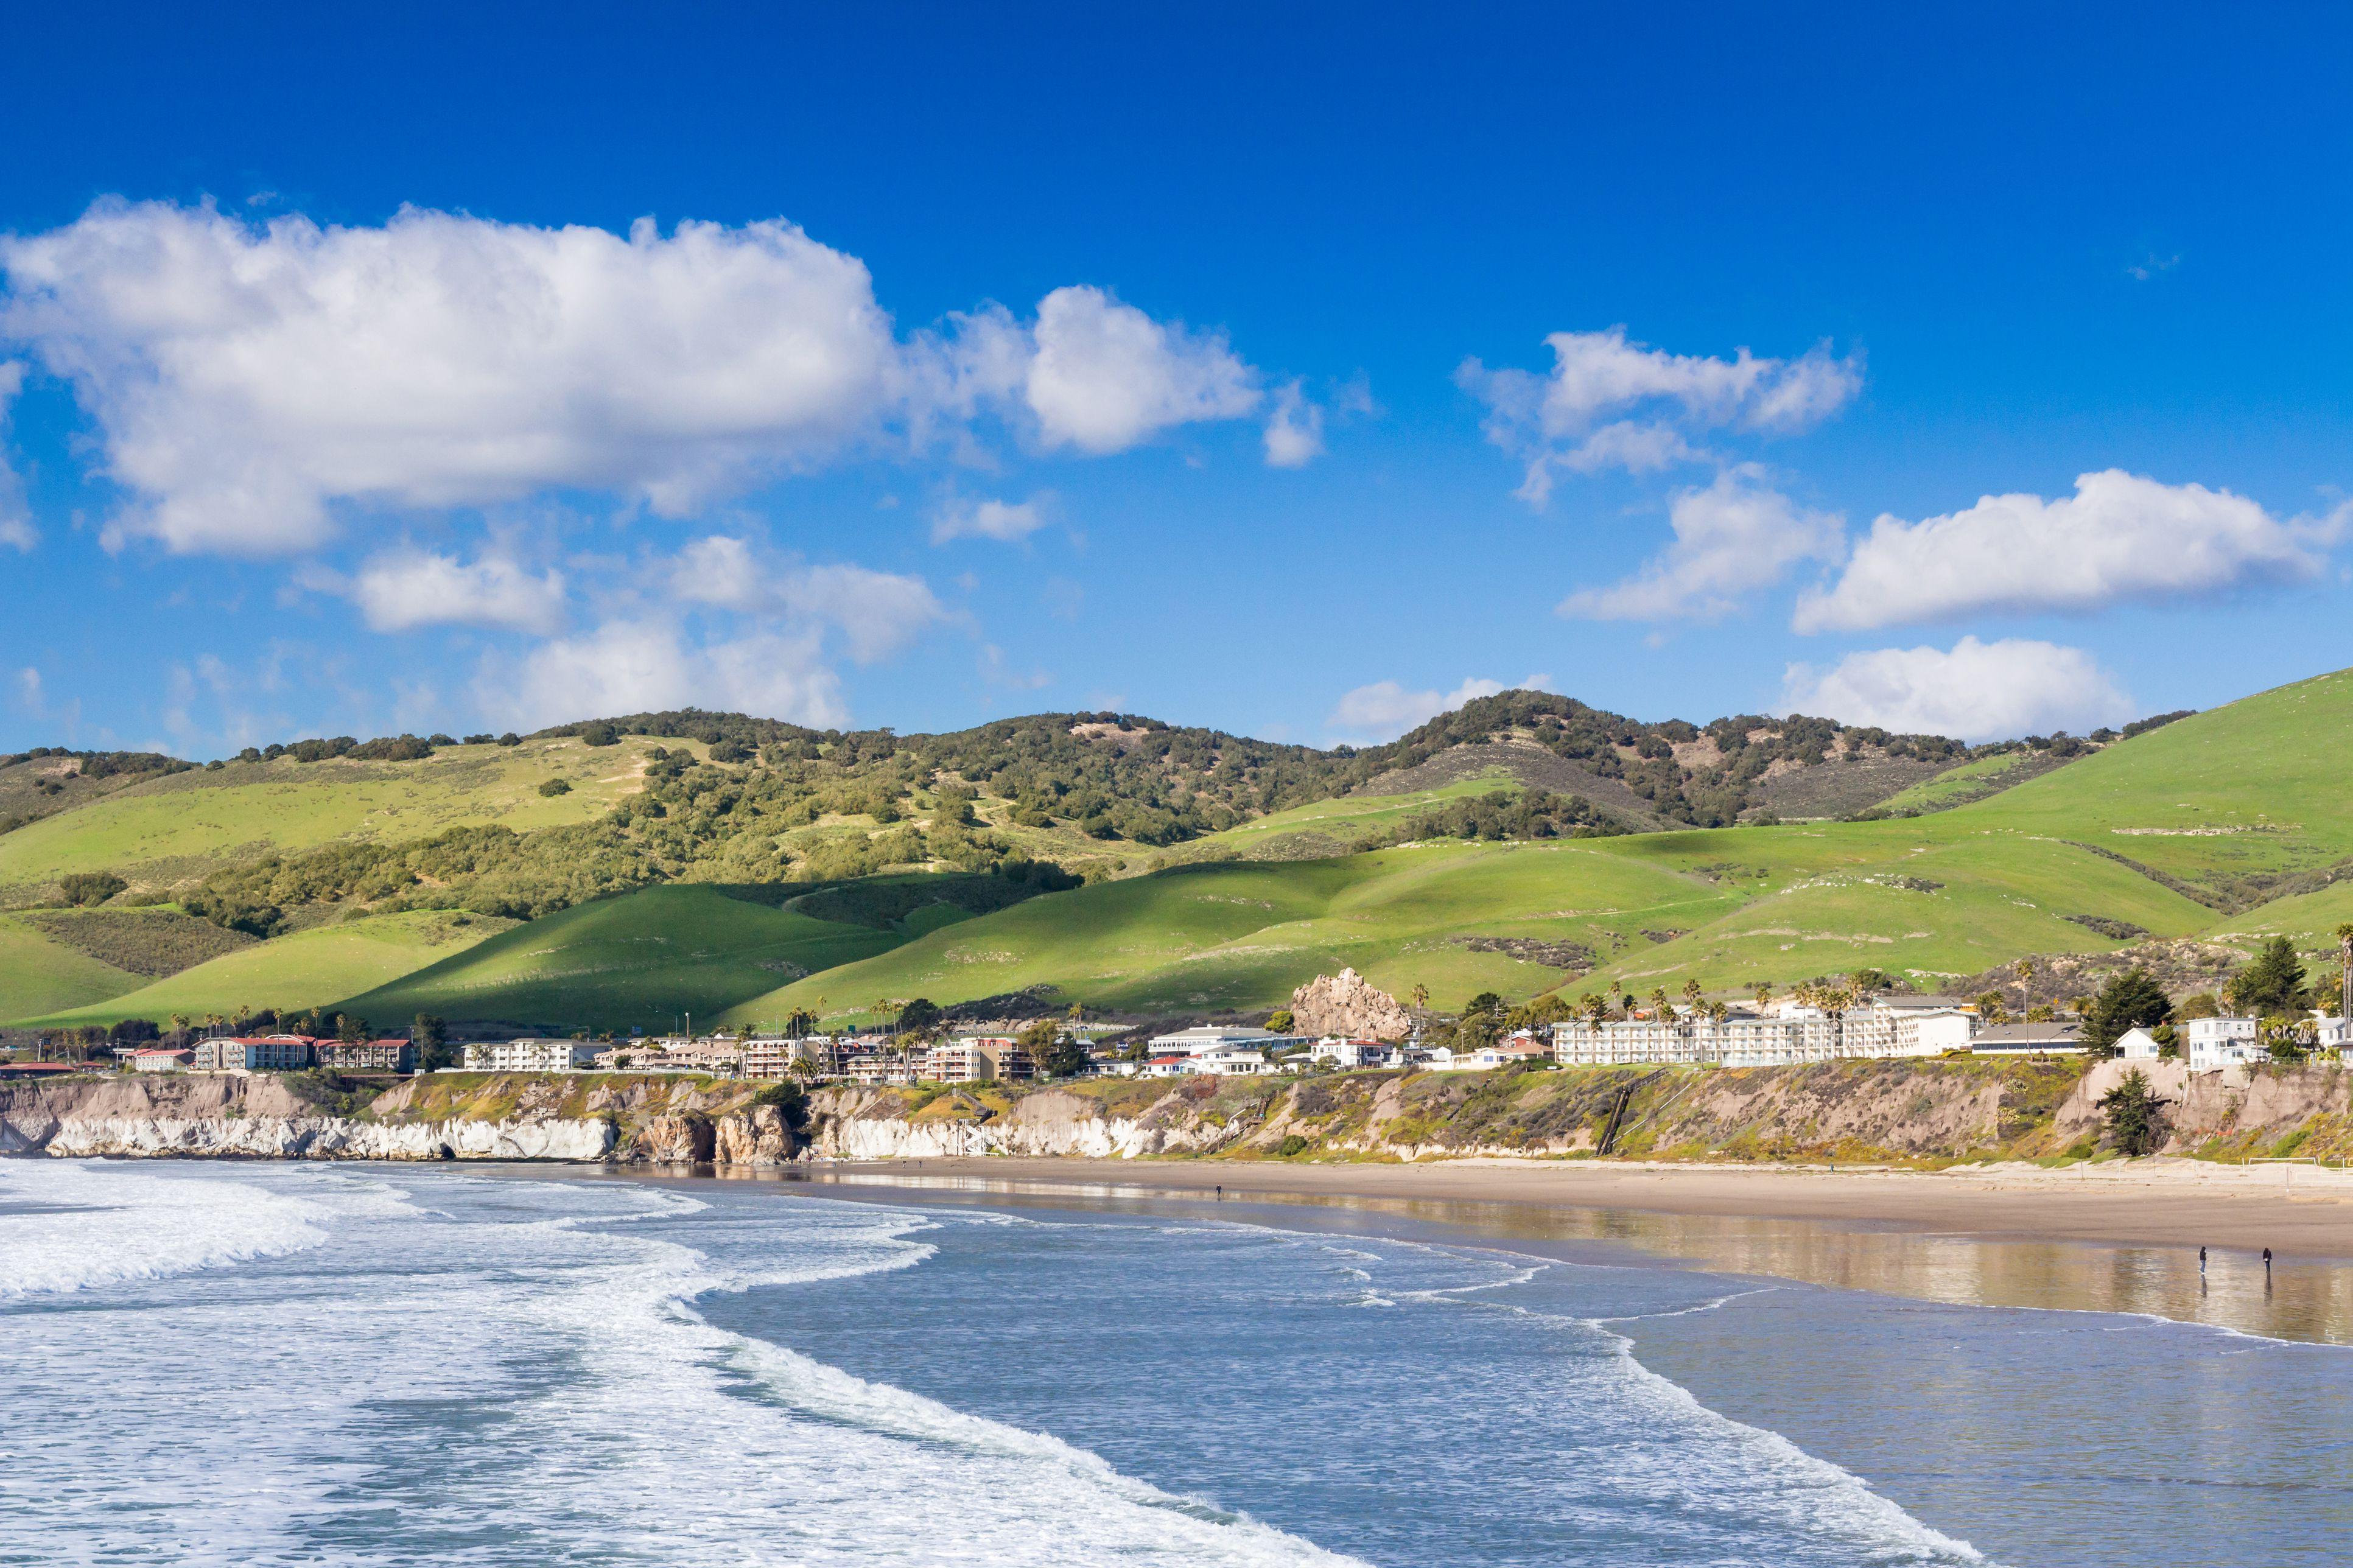 Pismo Beach Camping - Campgrounds - RV Parks